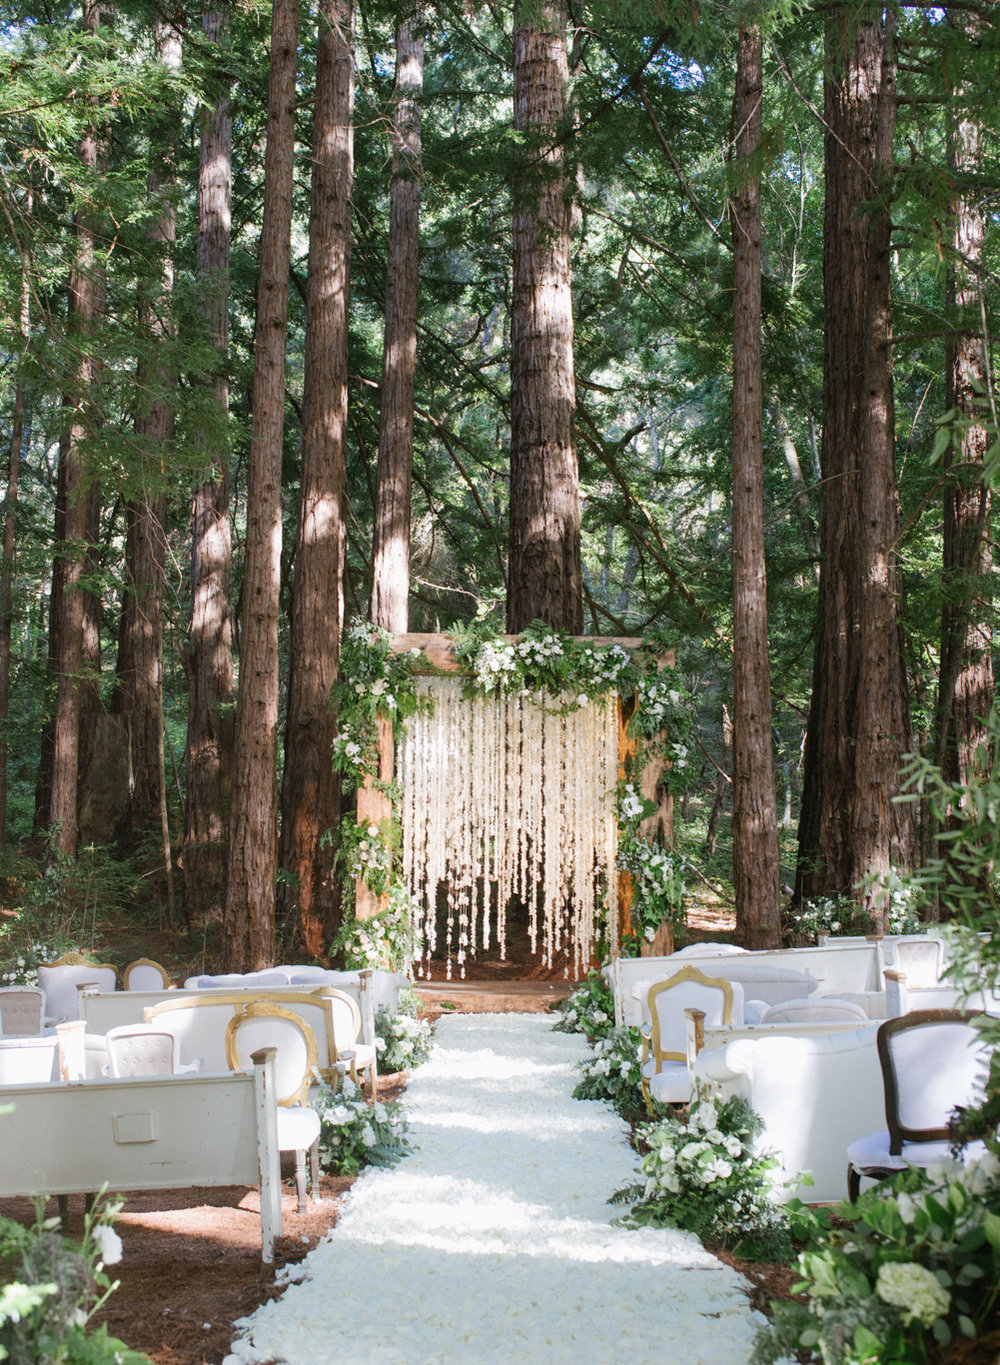 Vintage seating set up among the redwoods for a wedding ceremony in the Santa Lucia Preserve in Carmel, California; Sylvie Gil Photography